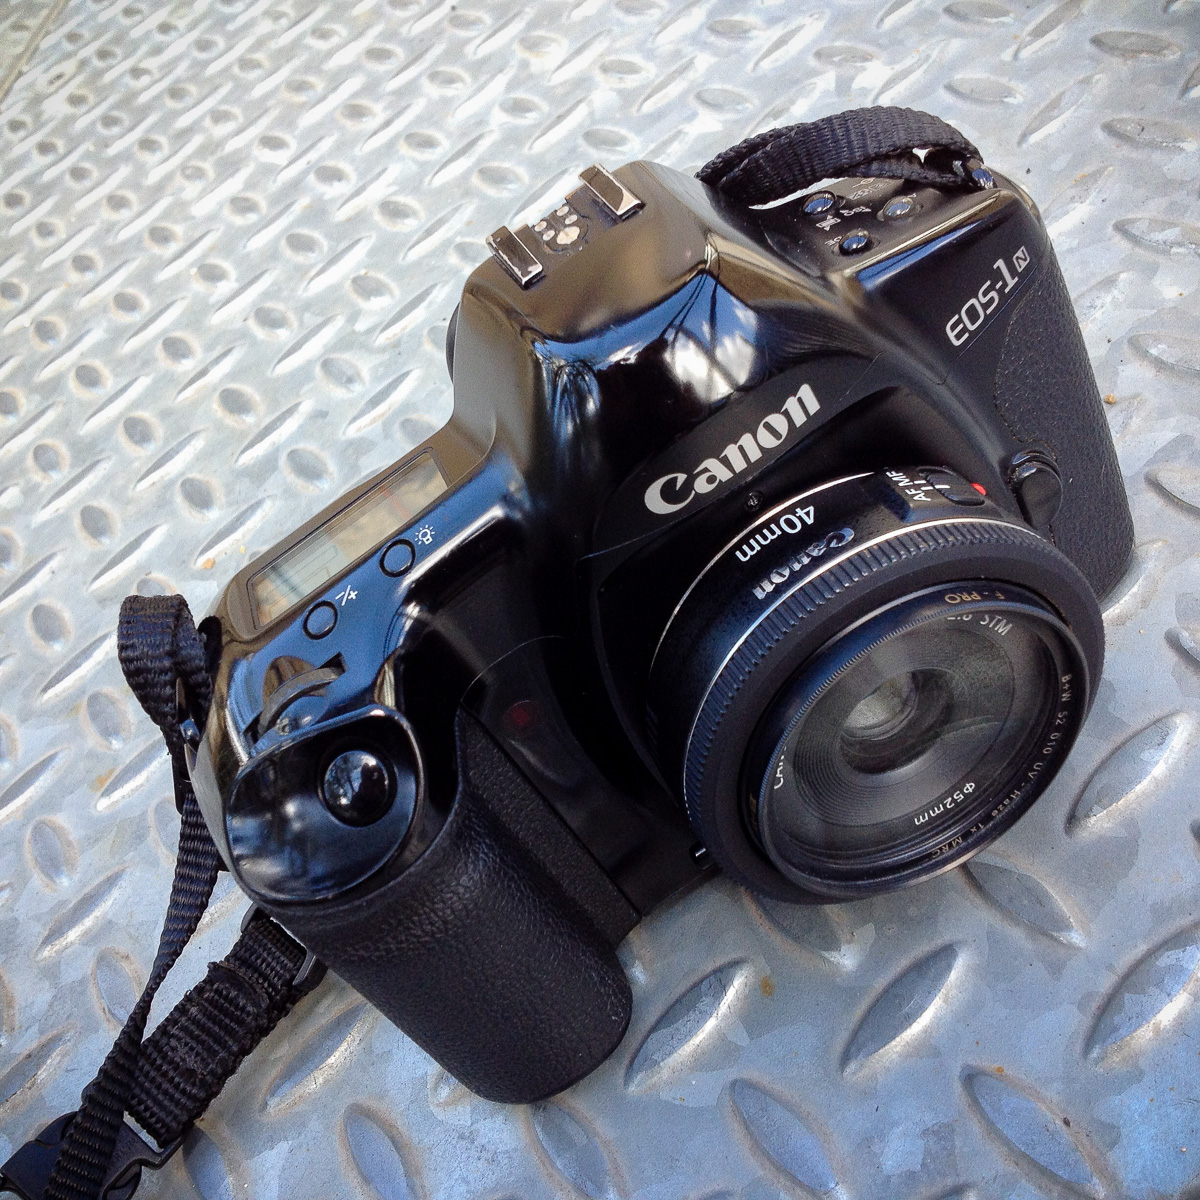 My Canon EOS 1N with EF 40mm f/2.8 pancake lens.